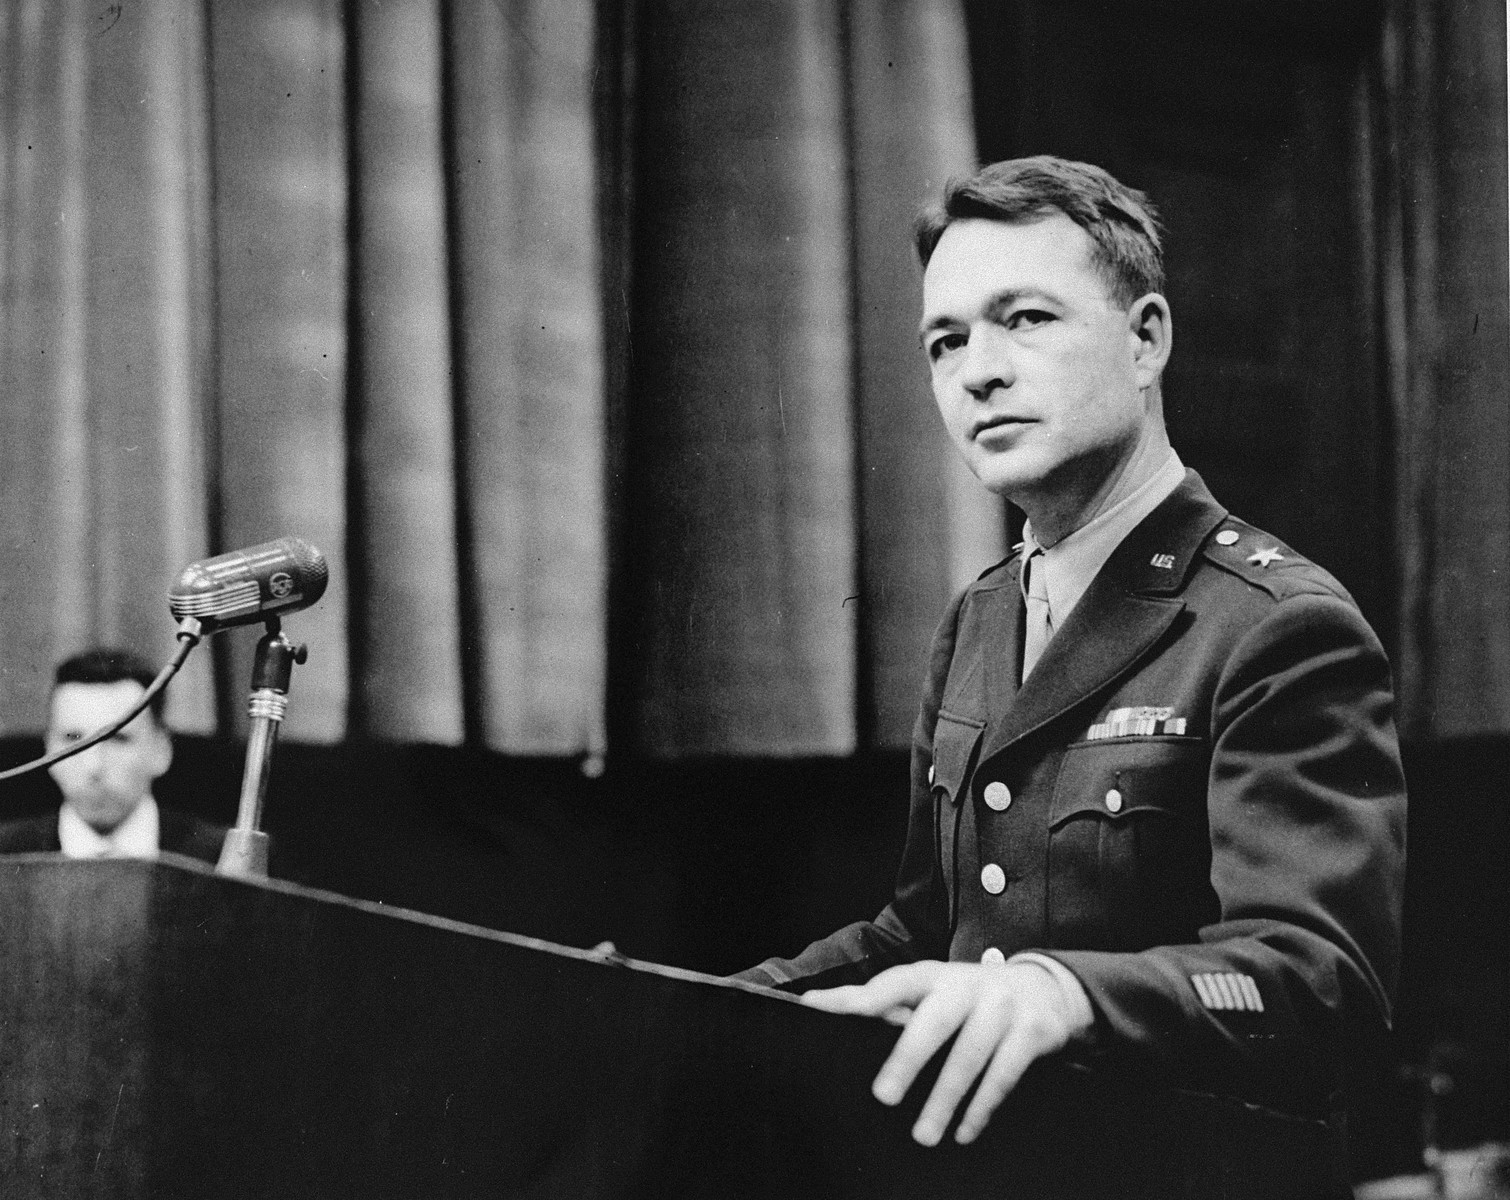 Brigadier General Telford Taylor, the Chief of Counsel for the prosecution, addresses the court at a session of the Medical Case (Doctors') Trial in Nuremberg.